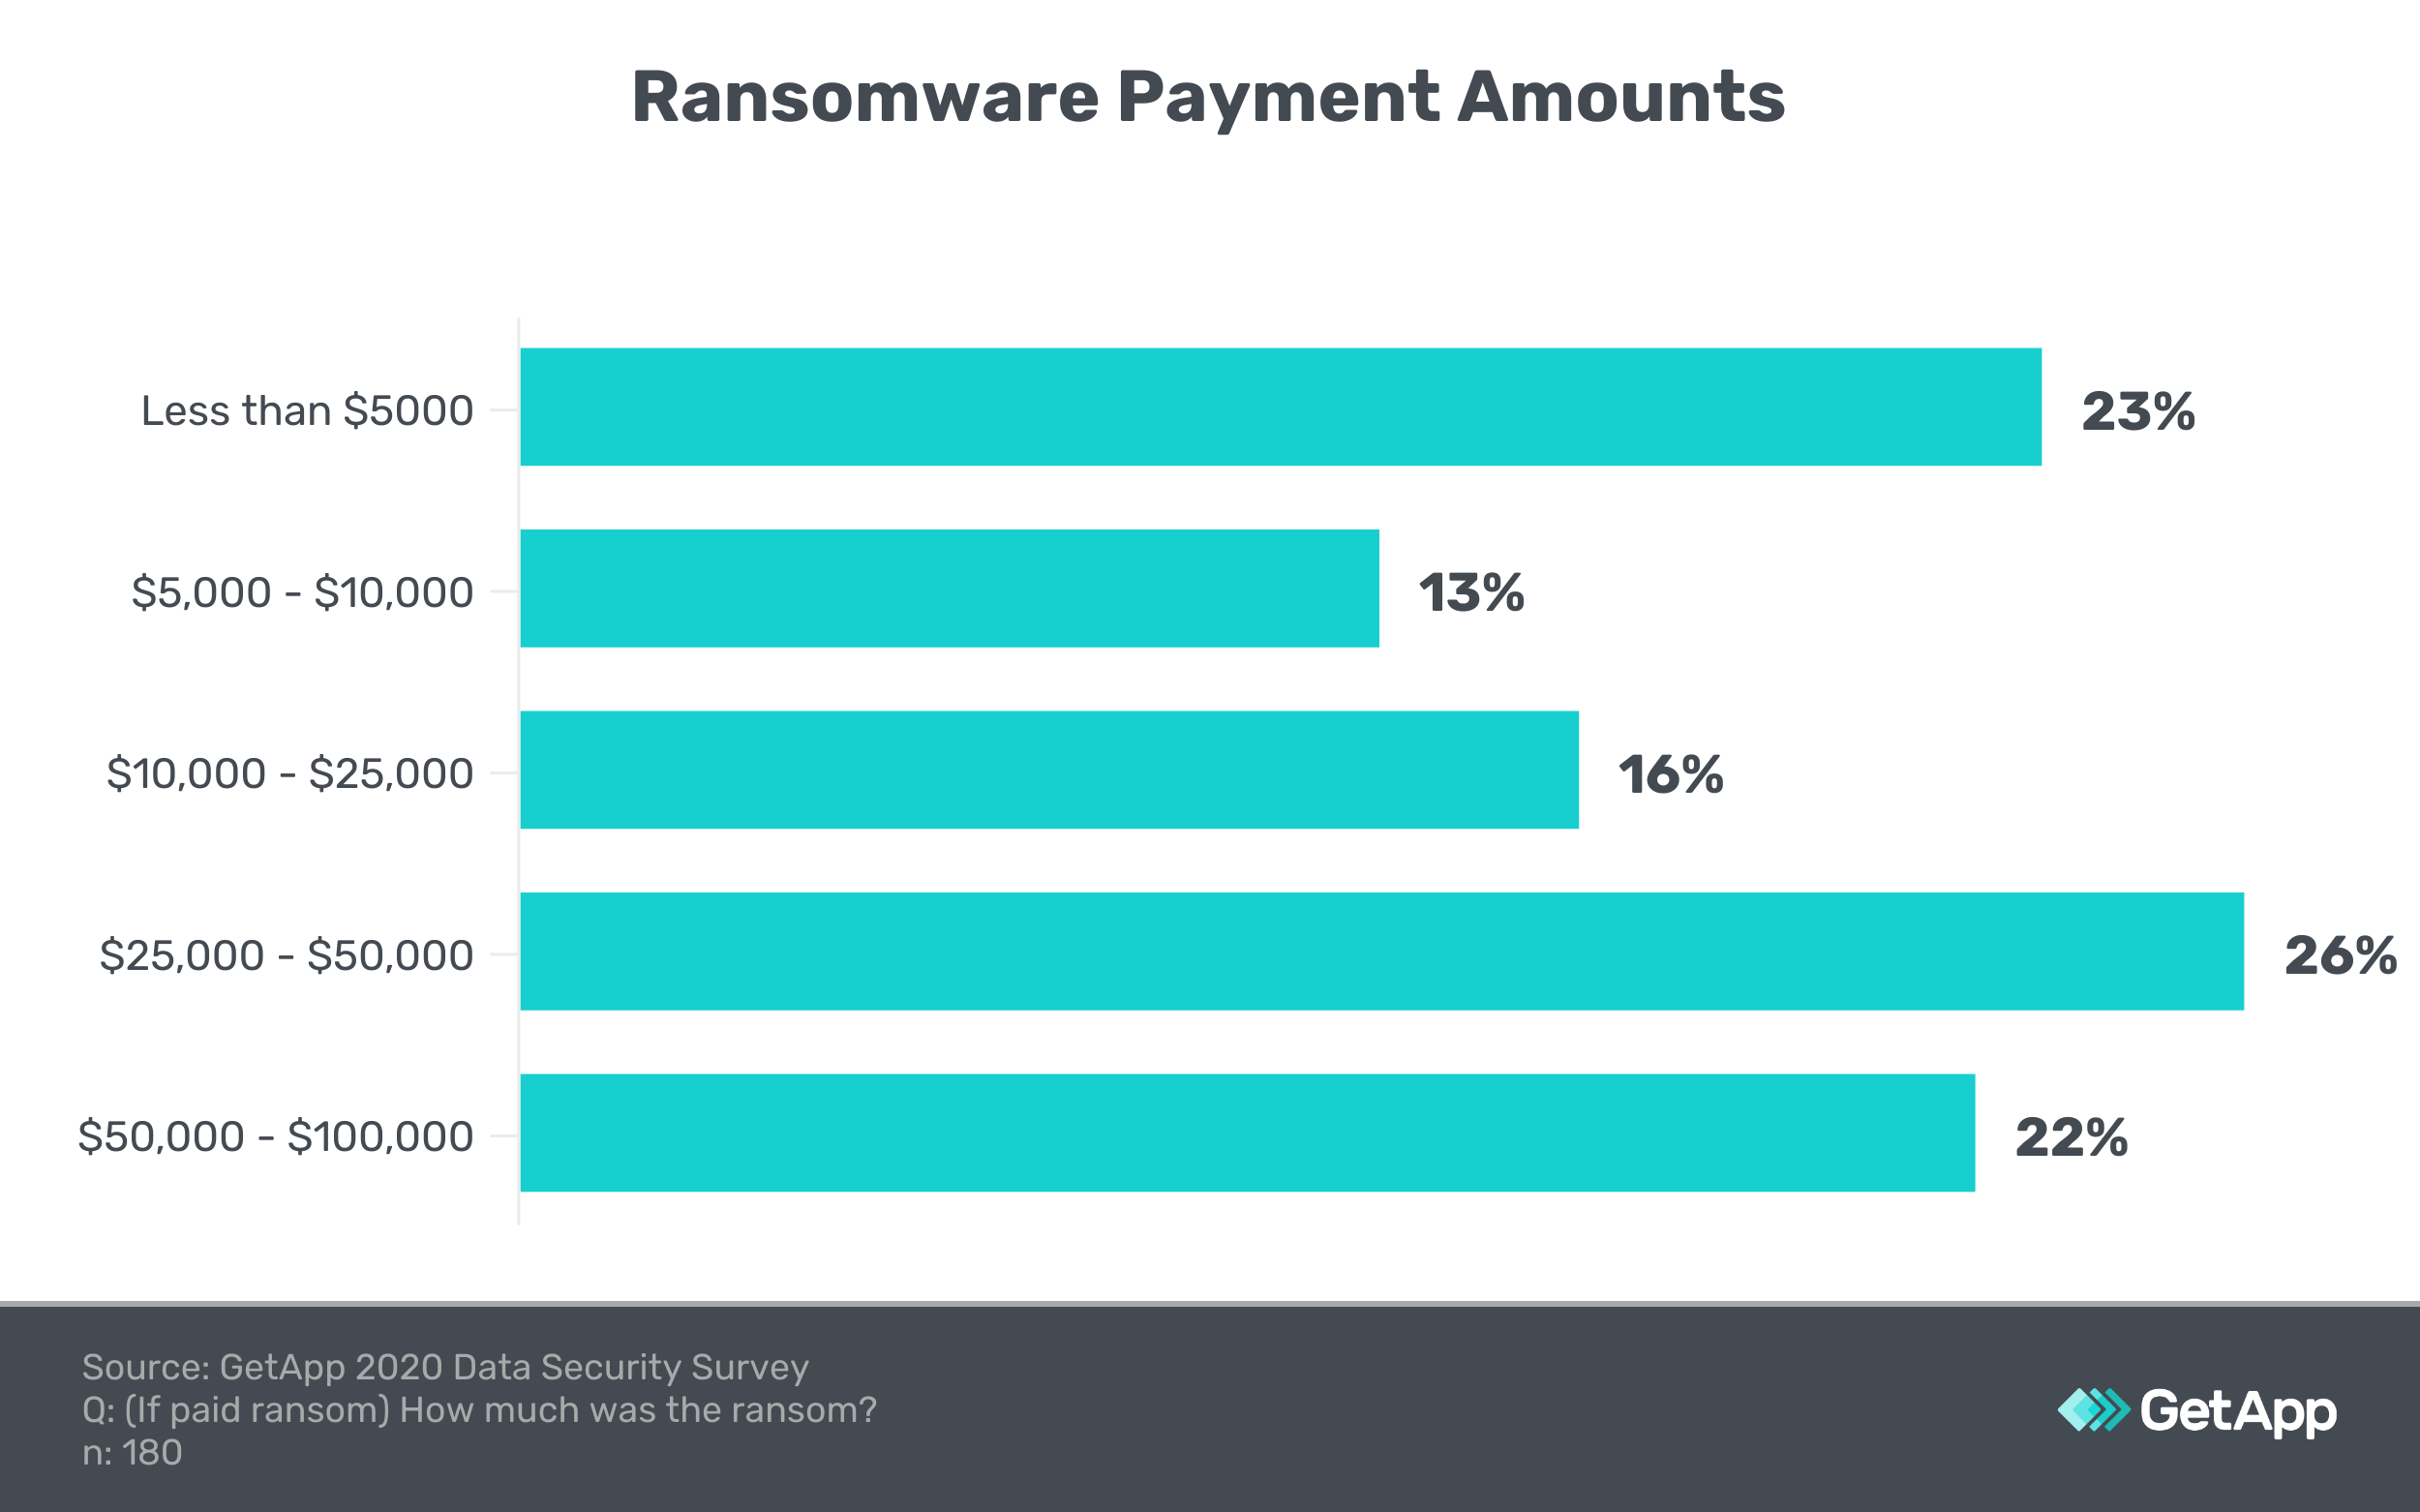 Graphic showing the percentage of people who paid ransomware payments of various amounts.